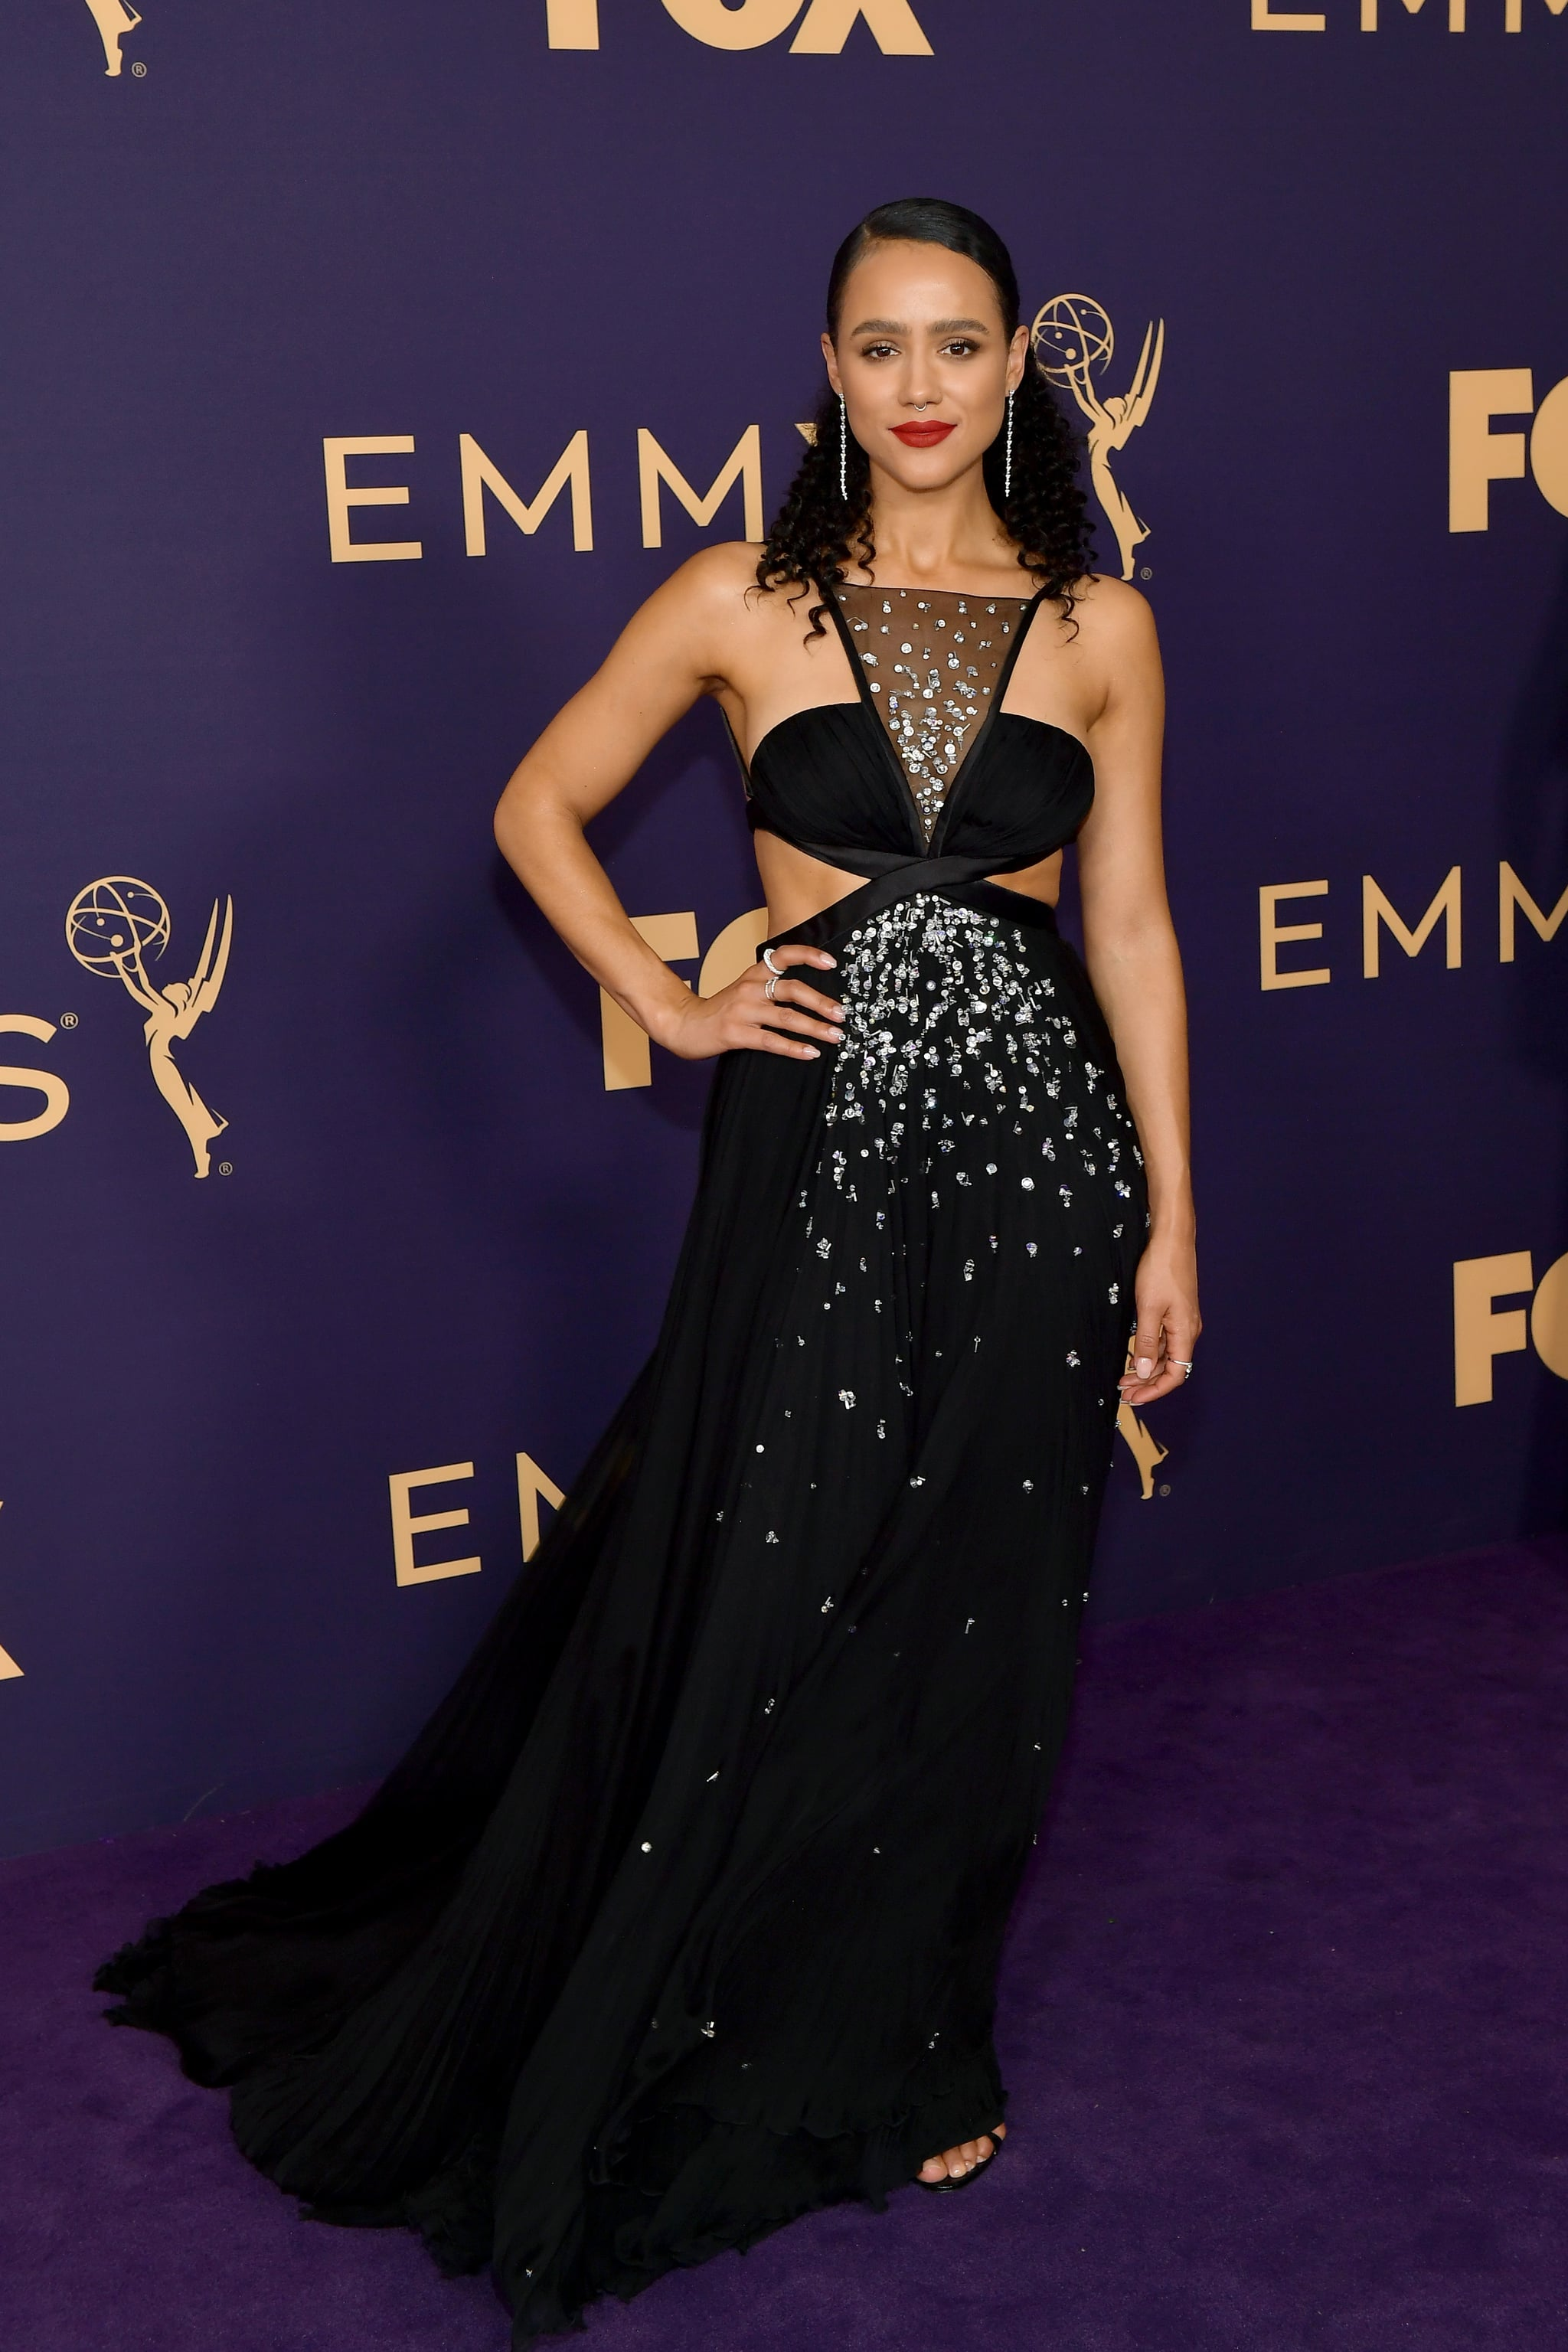 Nathalie Emmanuel at the 2019 Emmy Awards   These Sexy Emmys Red Carpet  Dresses Are So Hot, They Deserve an Award of Their Own   POPSUGAR Fashion  Photo 41